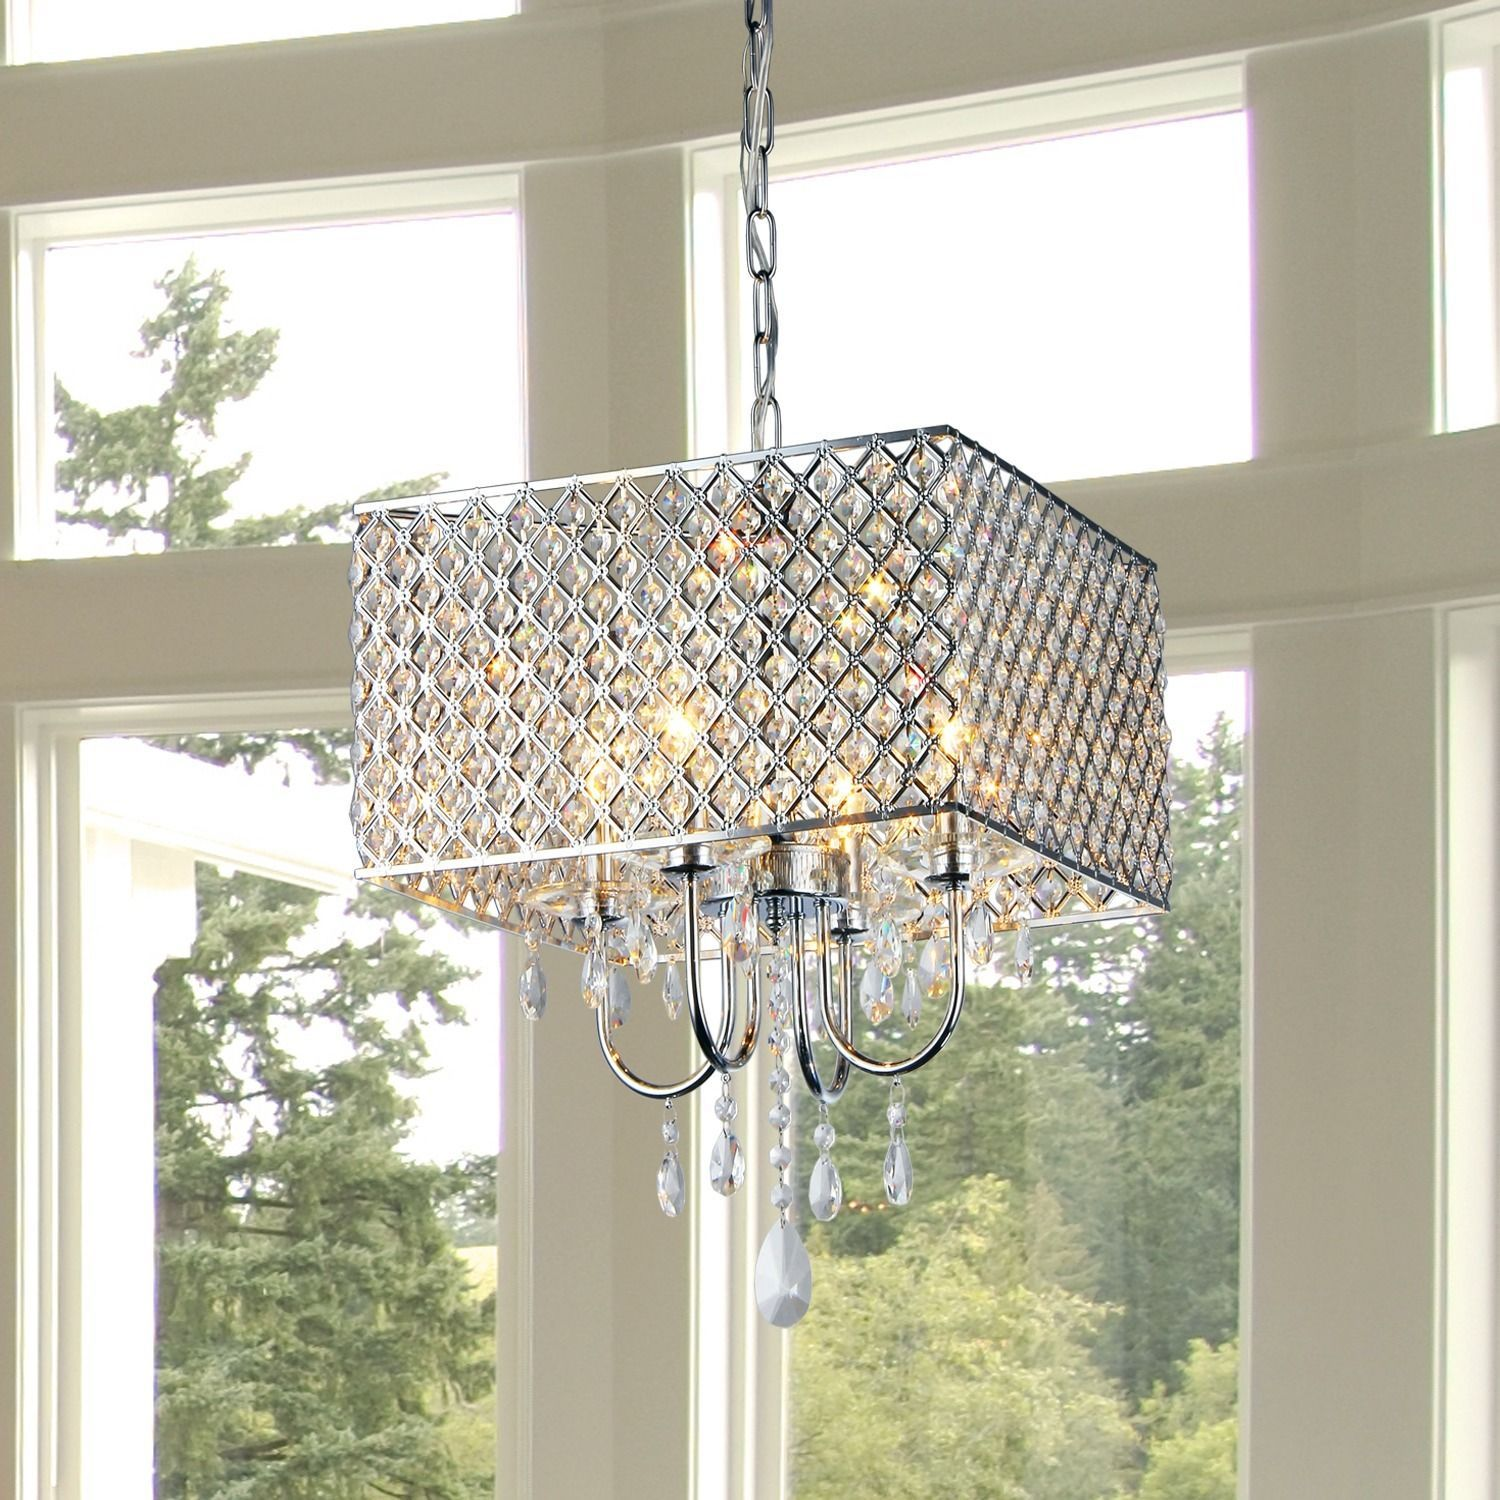 Add some elegance to your home decor with this crystal chandelier warehouse of tiffany royal crystal chandelier jcpenney arubaitofo Image collections